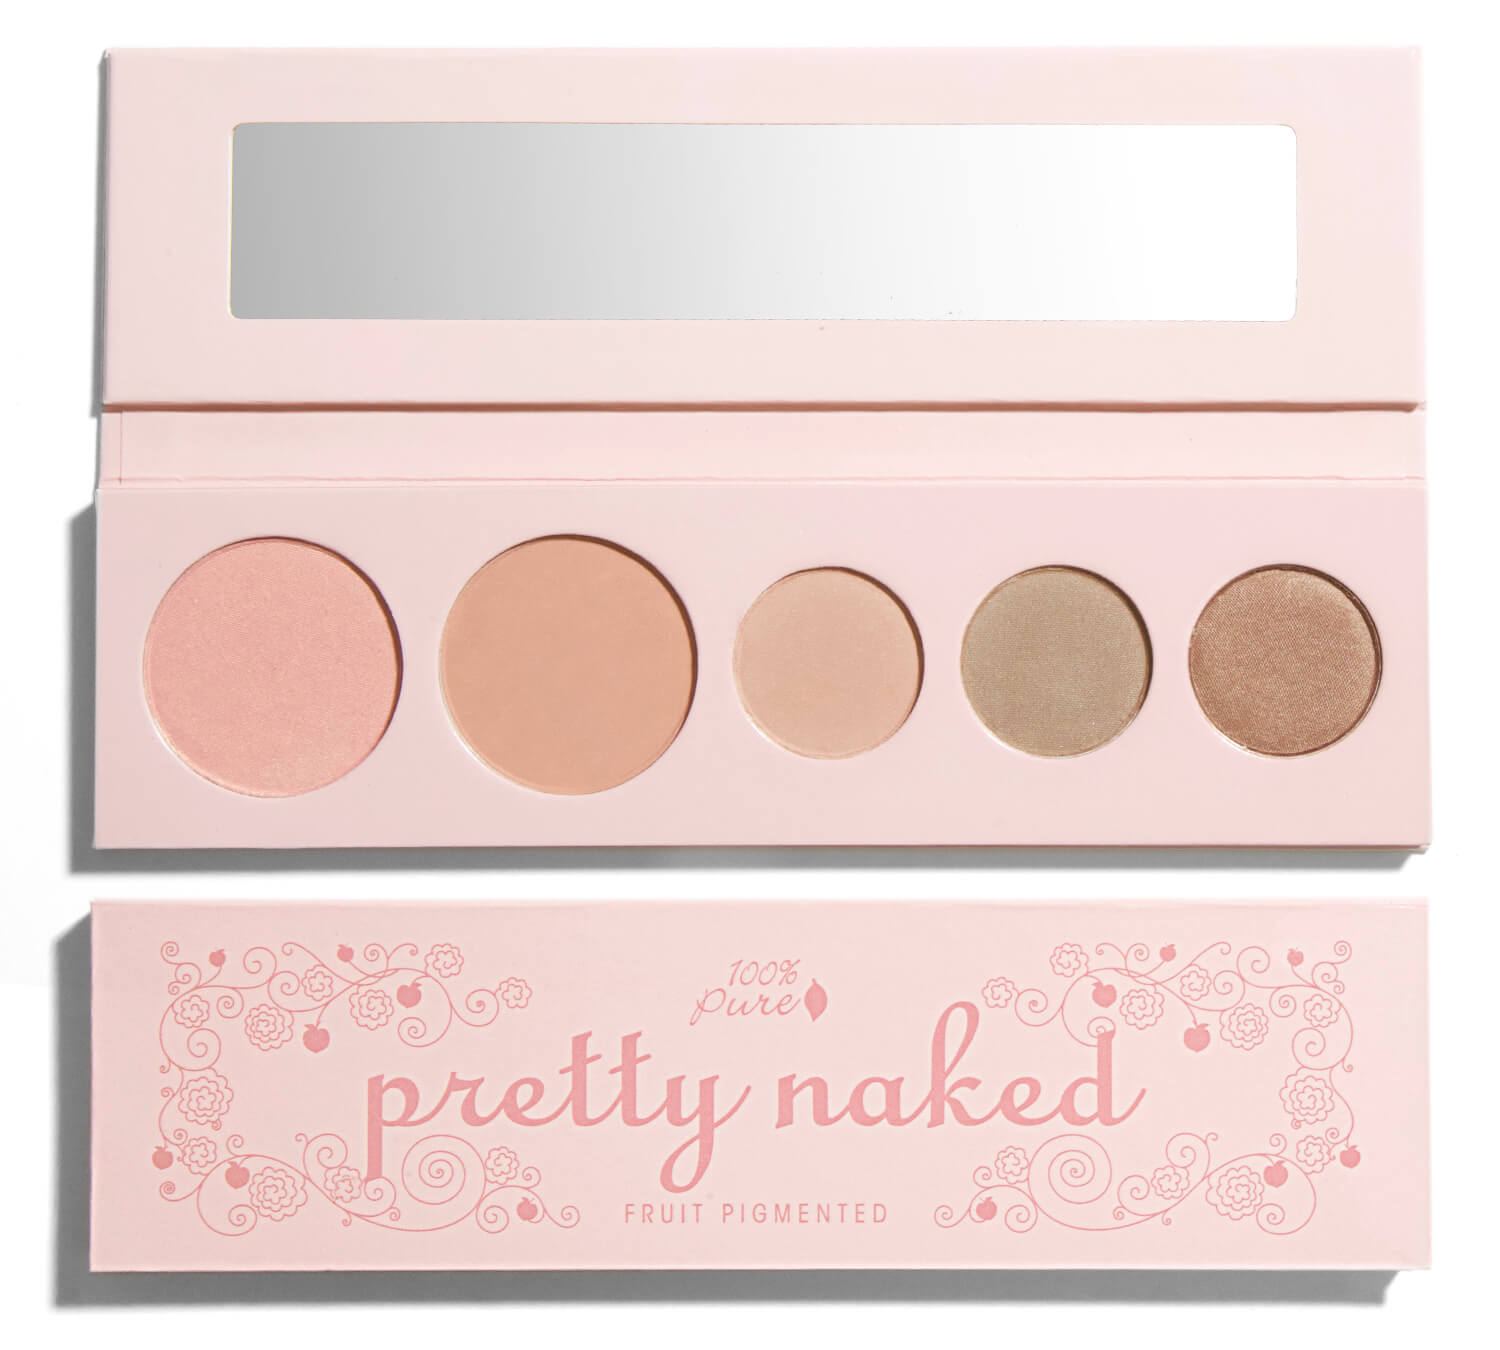 100% PURE Fruit Pigmented® Pretty Naked Palette